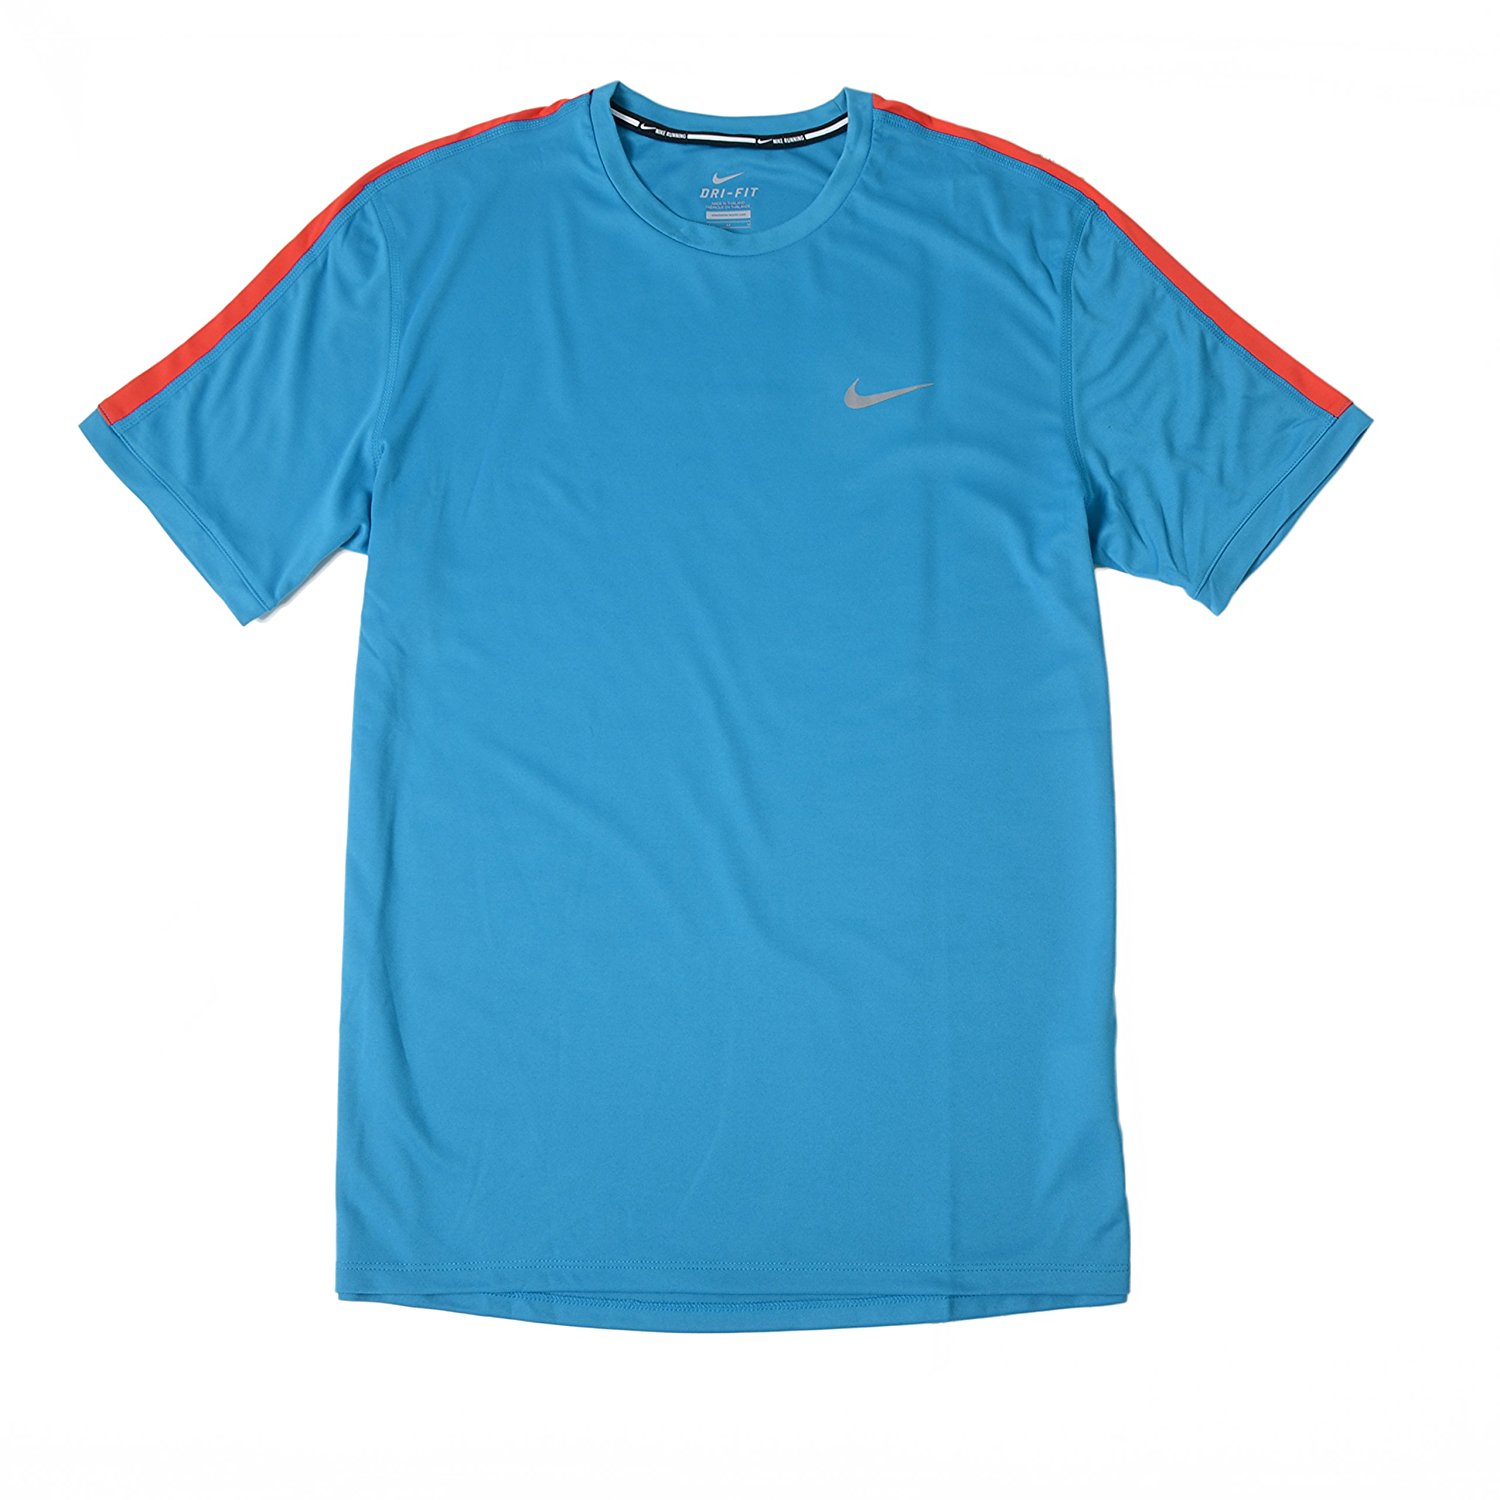 Cheap Nike Fit T Shirt Find Nike Fit T Shirt Deals On Line At